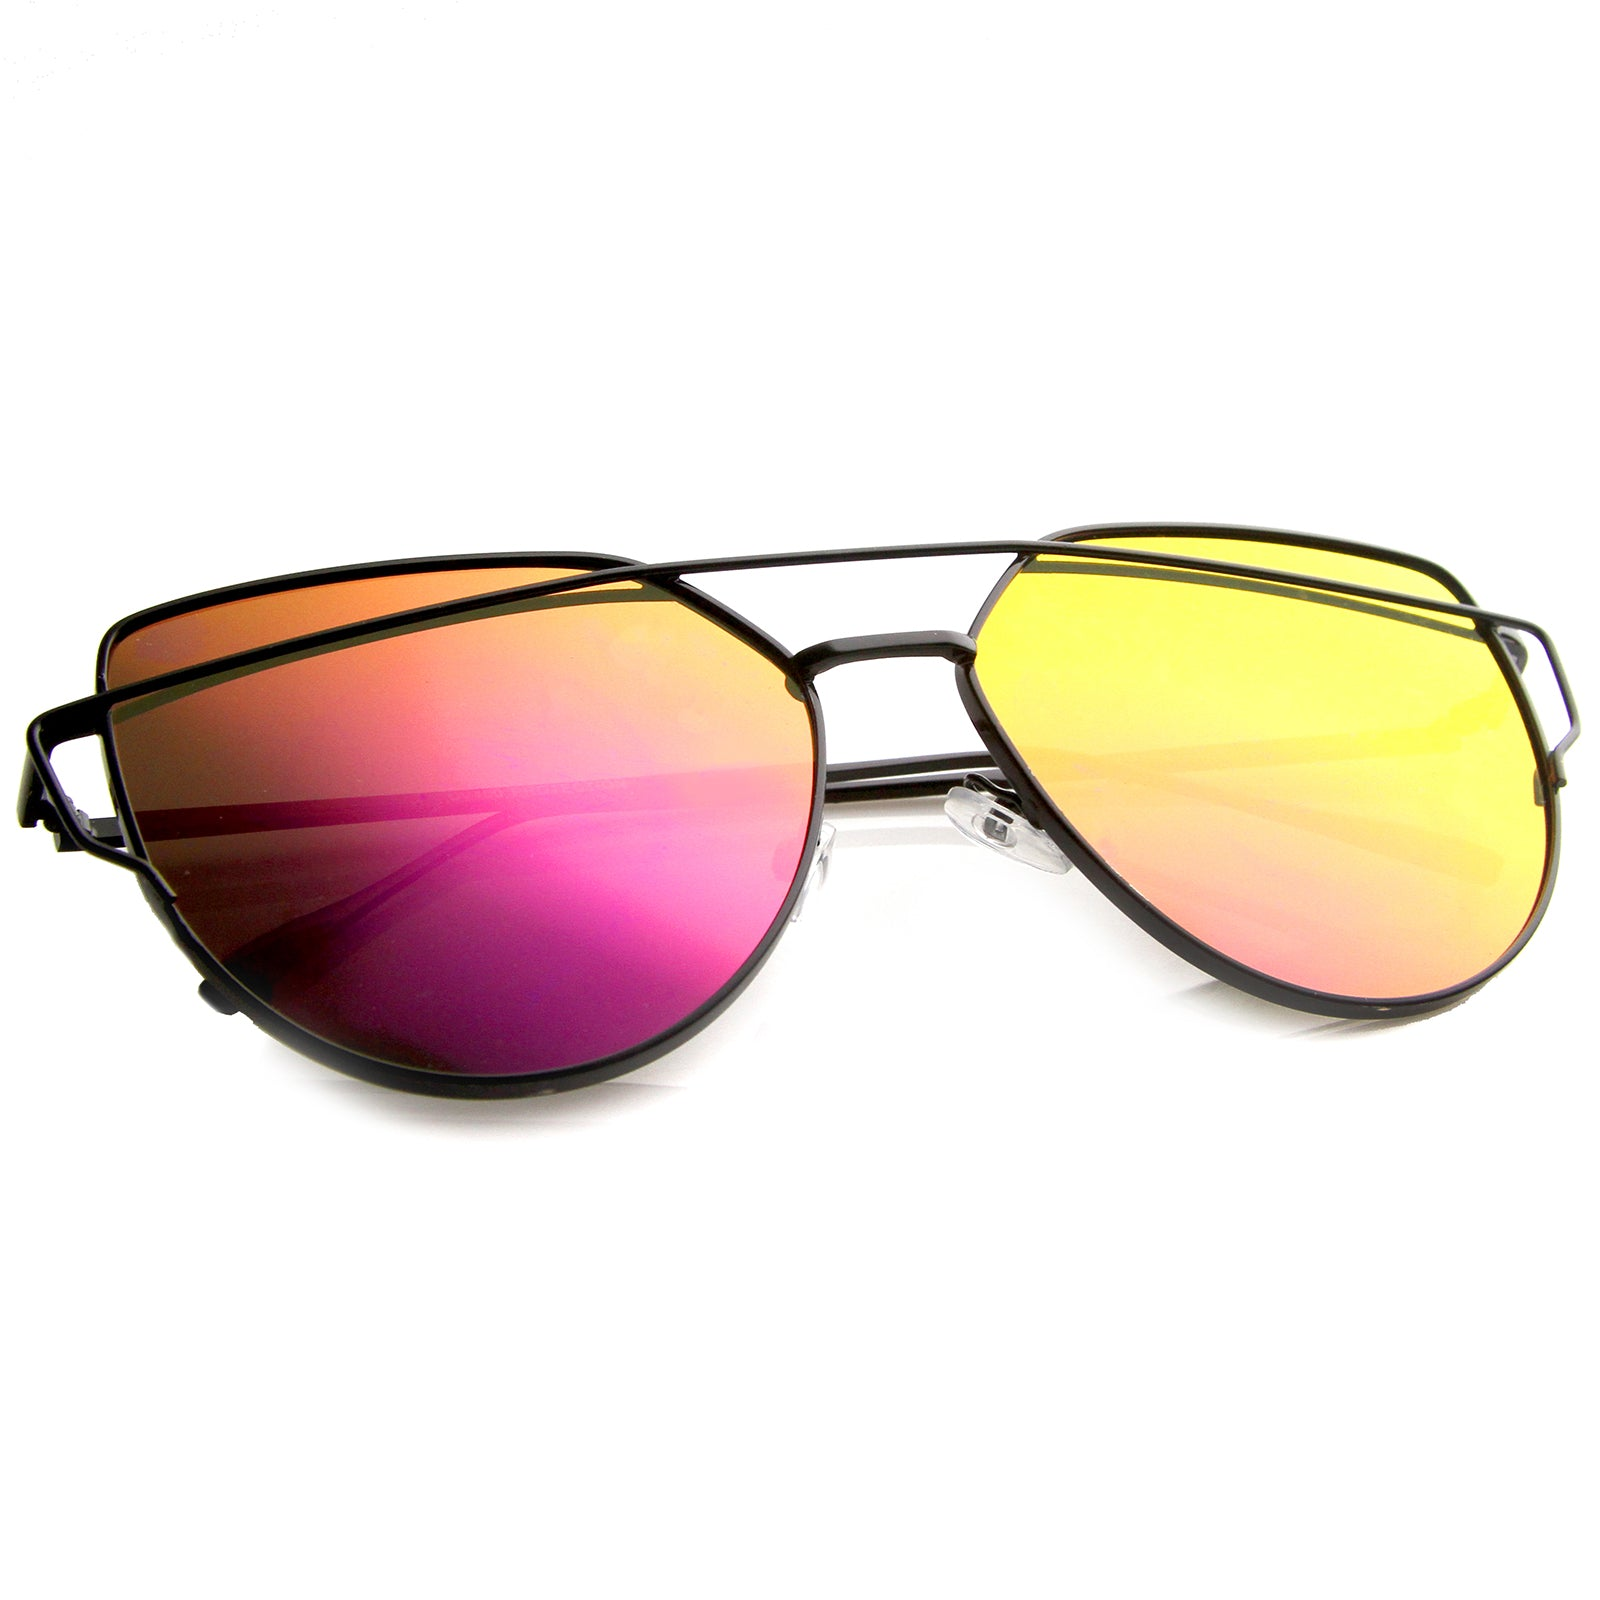 Oversize Metal Frame Thin Temple Color Mirror Flat Lens Aviator Sunglasses 62mm - sunglass.la - 20